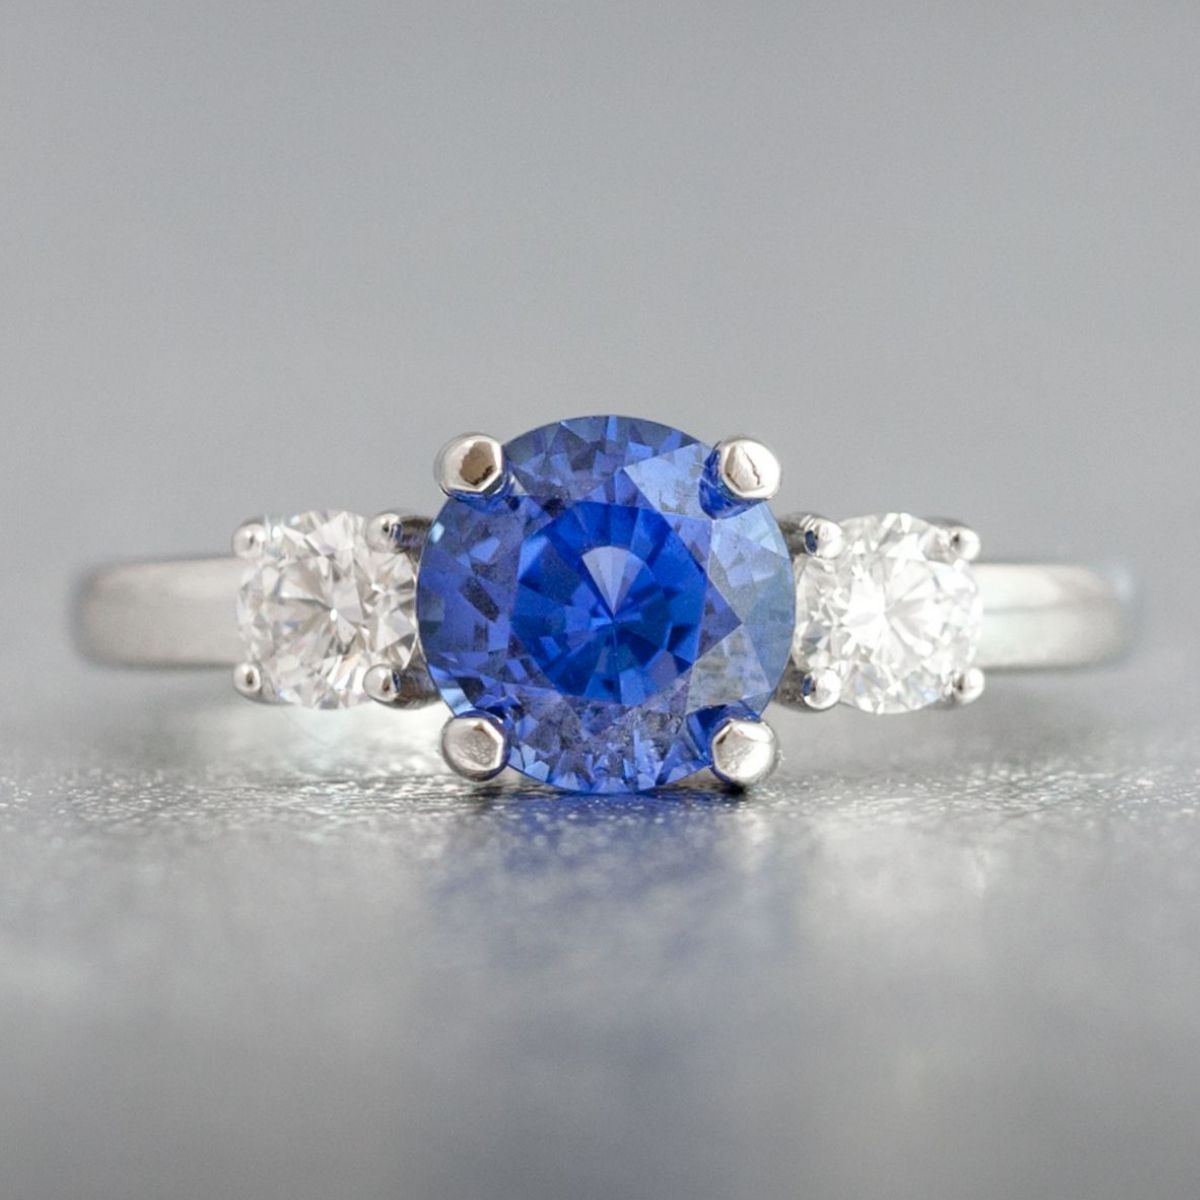 pinterest images favorites cuts ctw rings cost diamond side oval engagement best sapphire gem on lorillhartwell